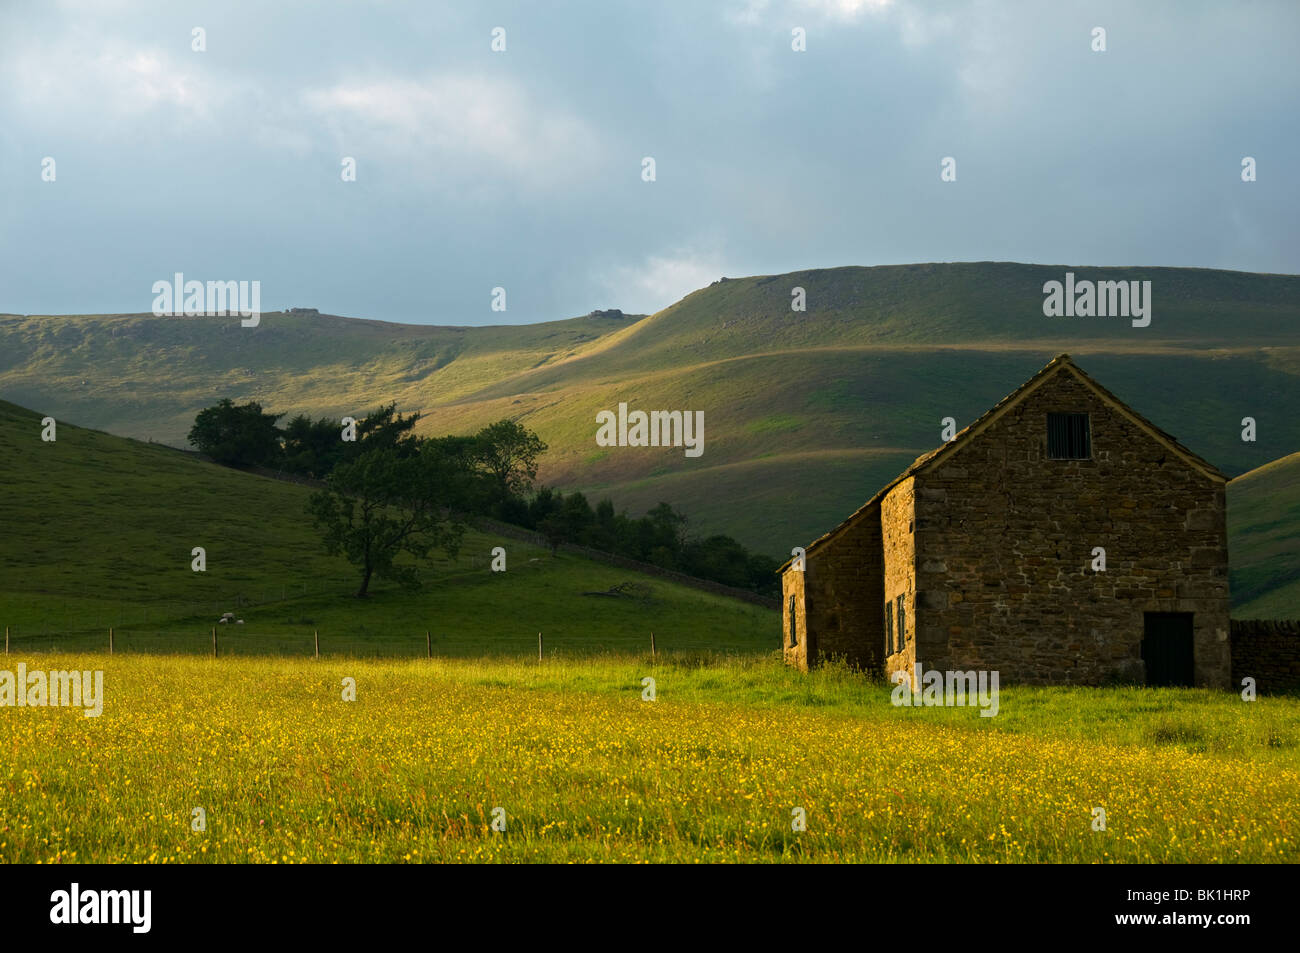 Barn below the Kinder Scout plateau, Edale, Peak District, Derbyshire, England, UK - Stock Image